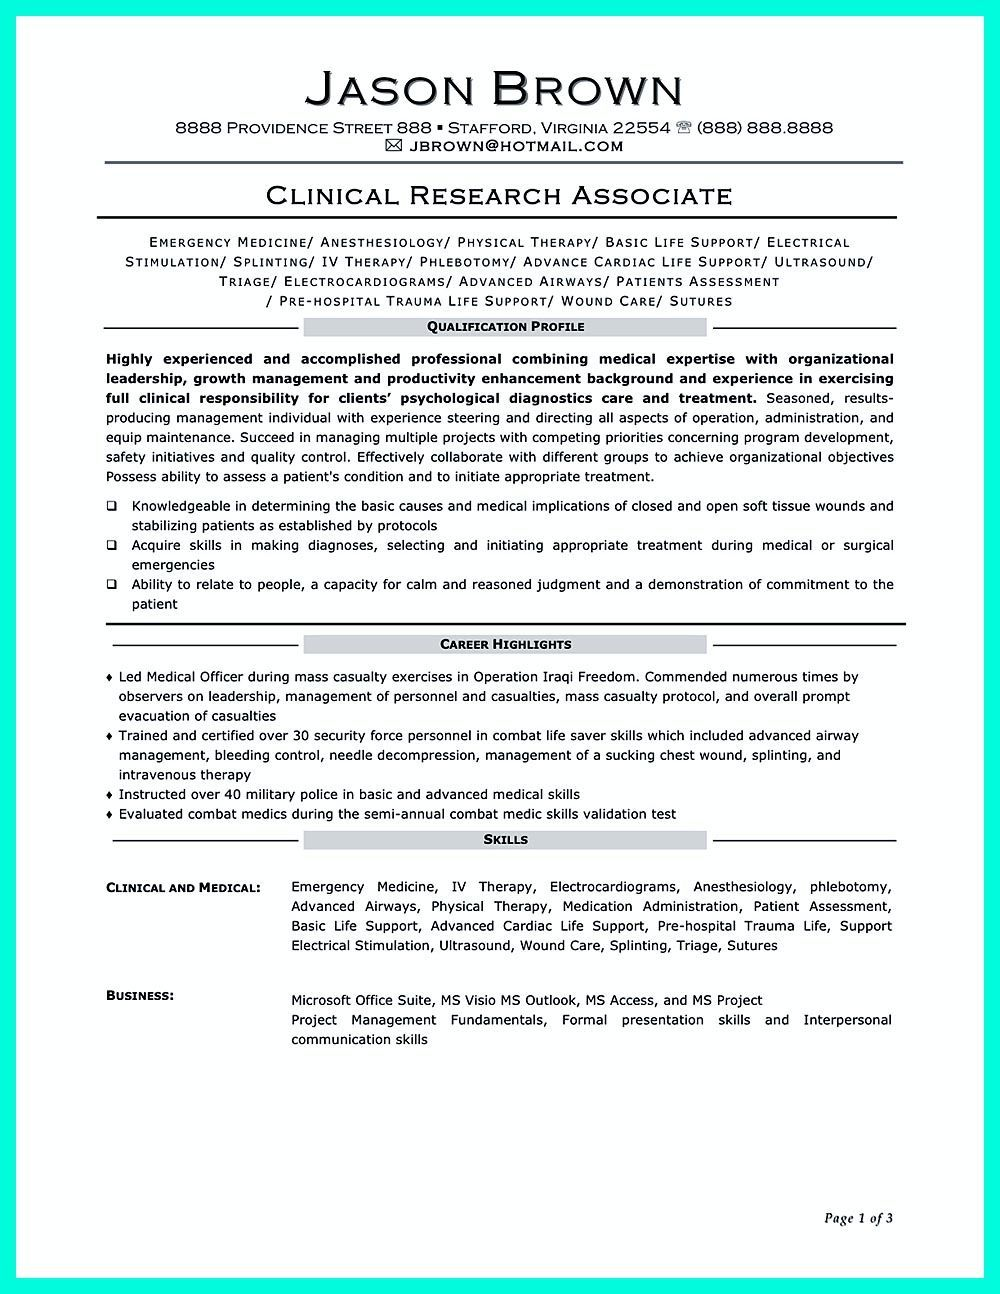 Clinical Research Associate Resume Objectives Are Needed To Convince Your Future Company That Your Goal Clinical Research Resume Objective Good Resume Examples